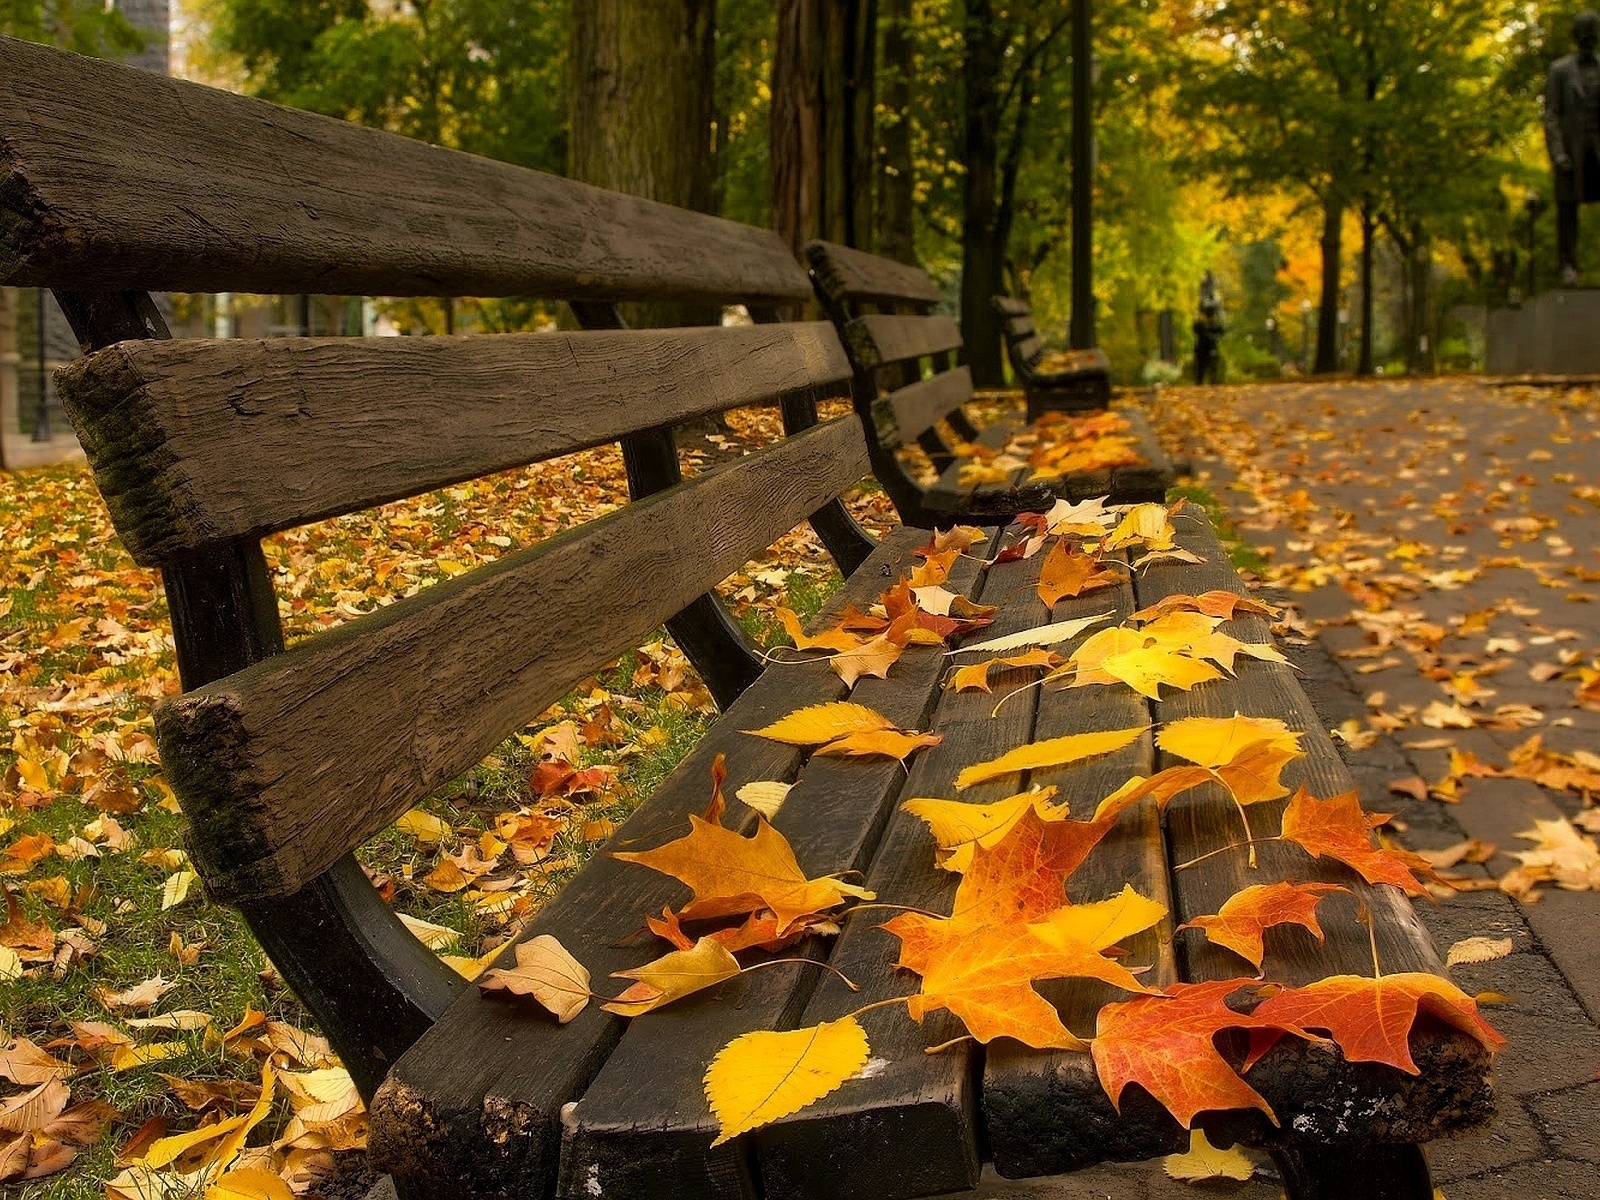 33410 download wallpaper Landscape, Autumn, Leaves screensavers and pictures for free